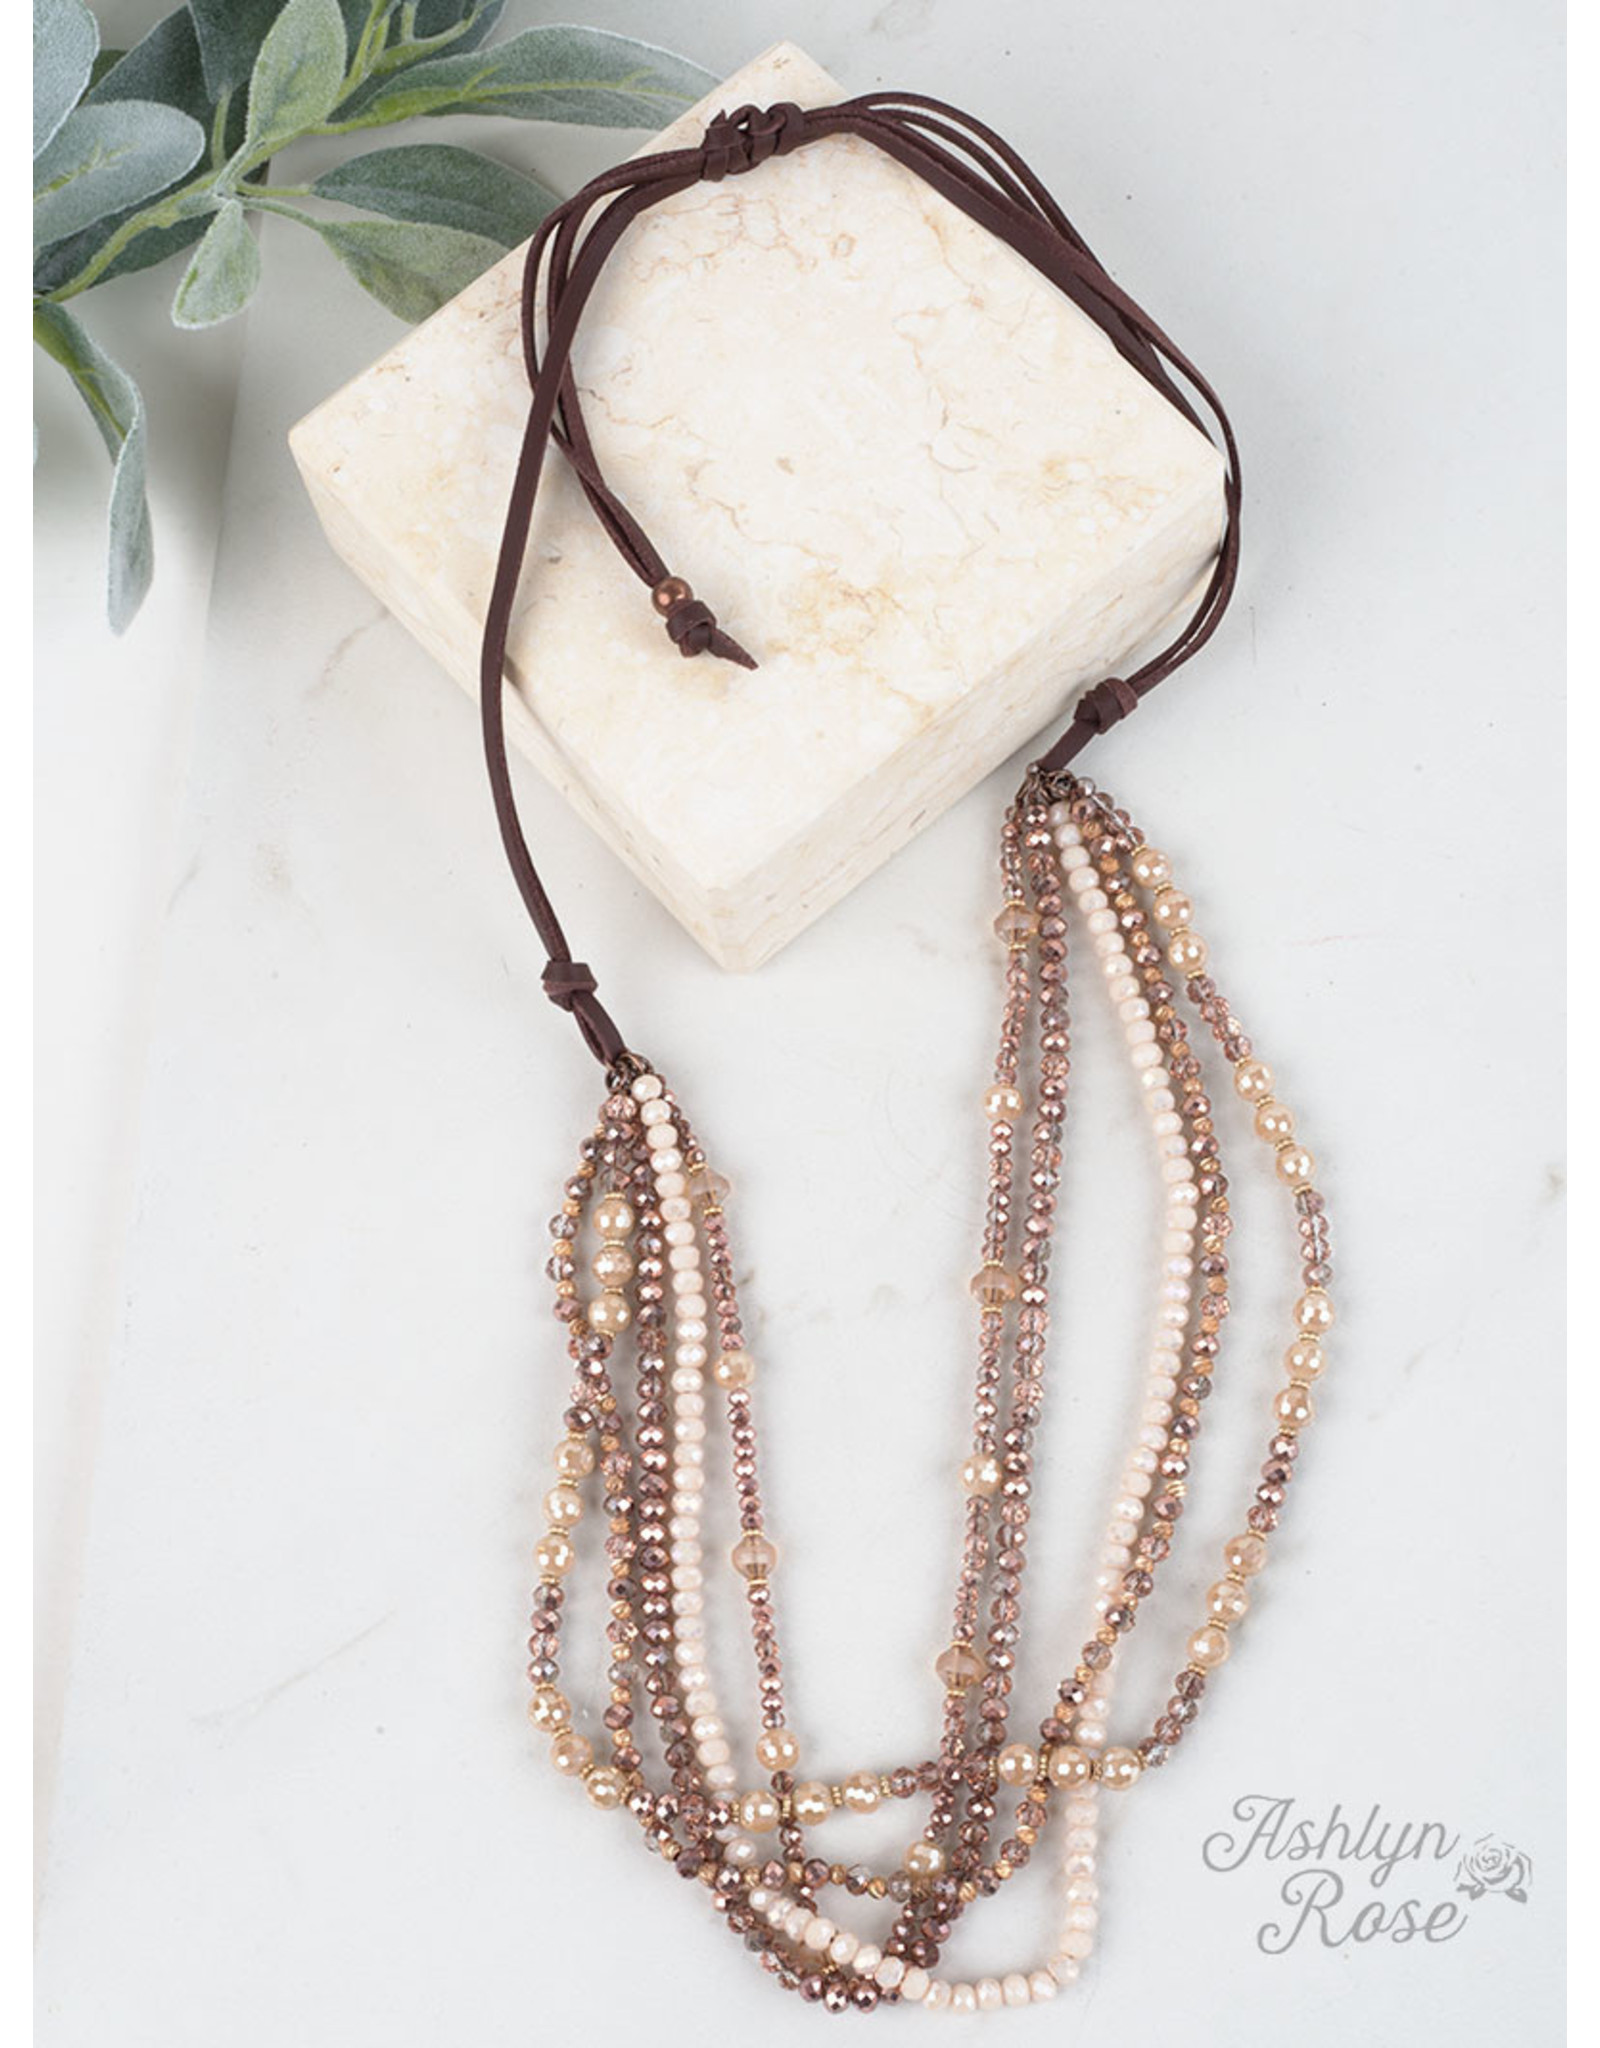 ROSE GOLD DRESSED TO IMPRESS LAYERED NECKLACE